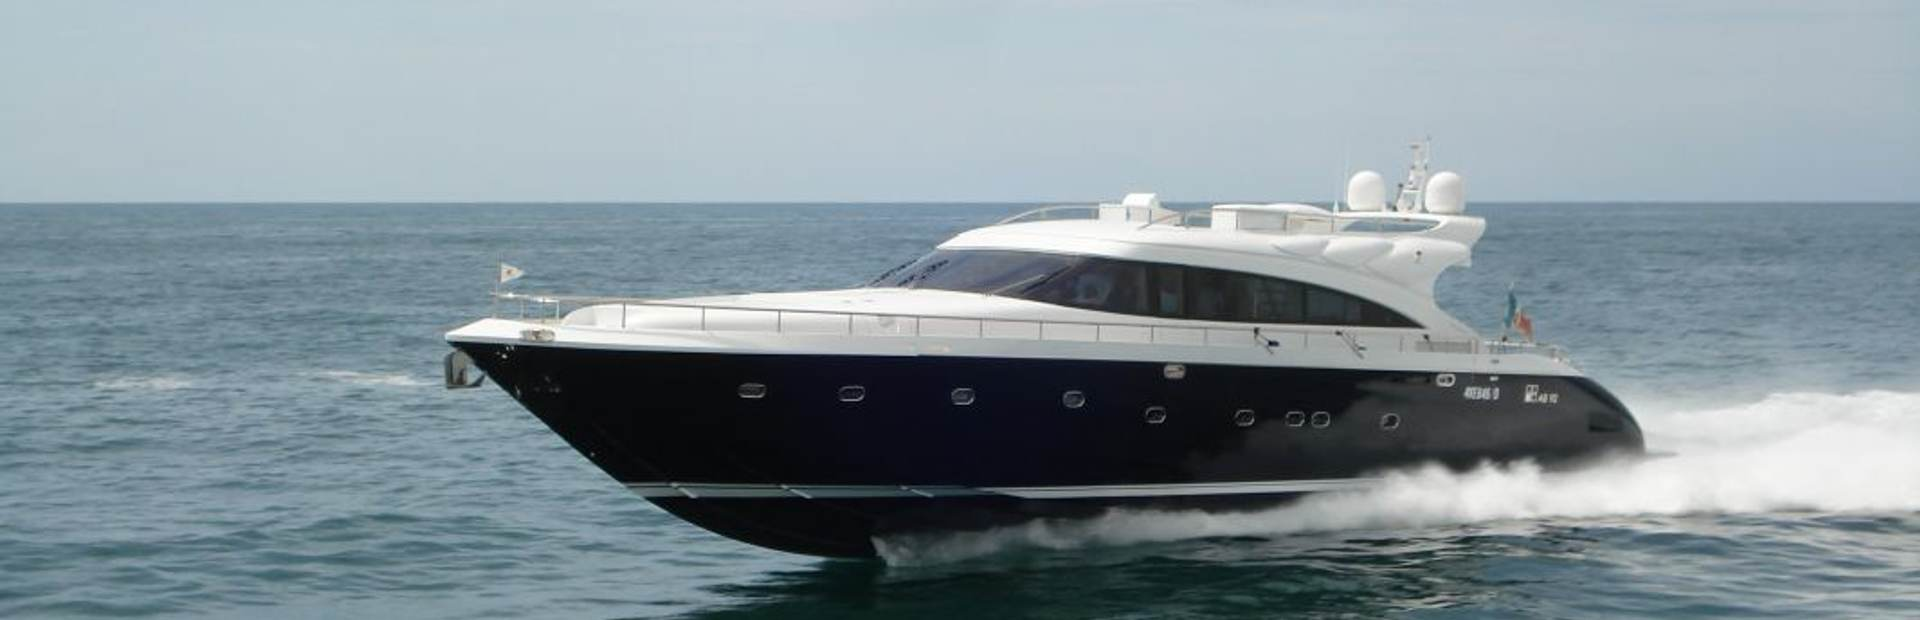 AB Yachts AB 92 Yacht Charter